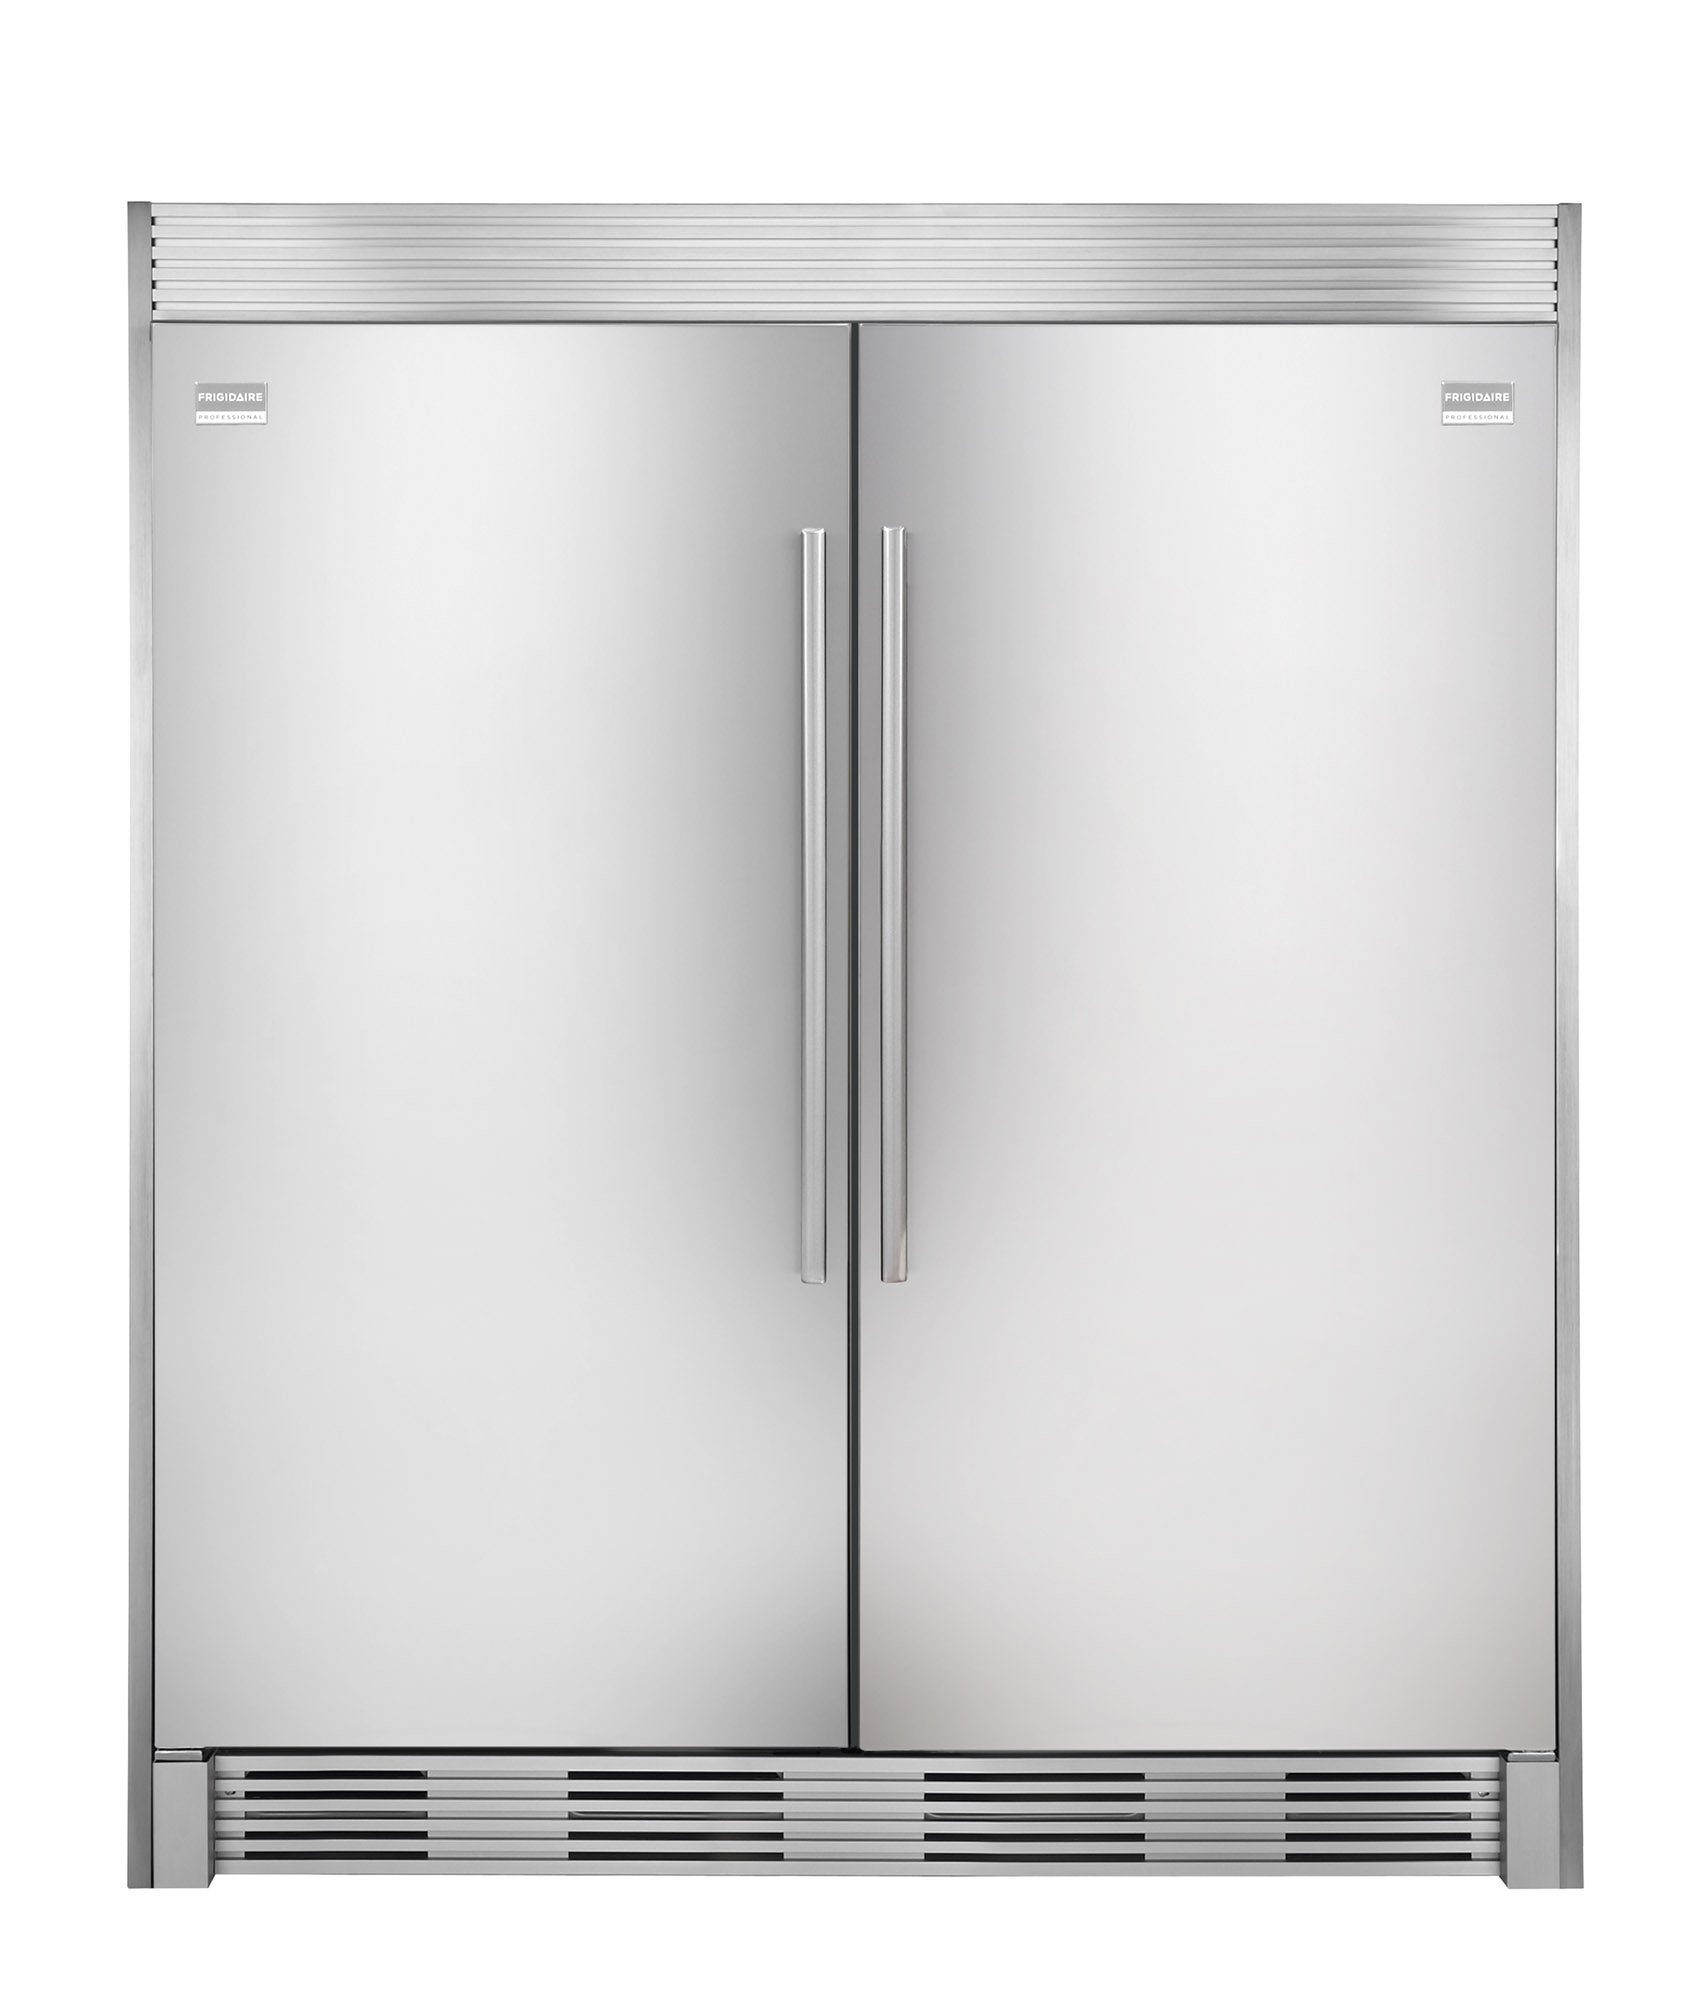 Image Result For Frigidaire Extended Warranty